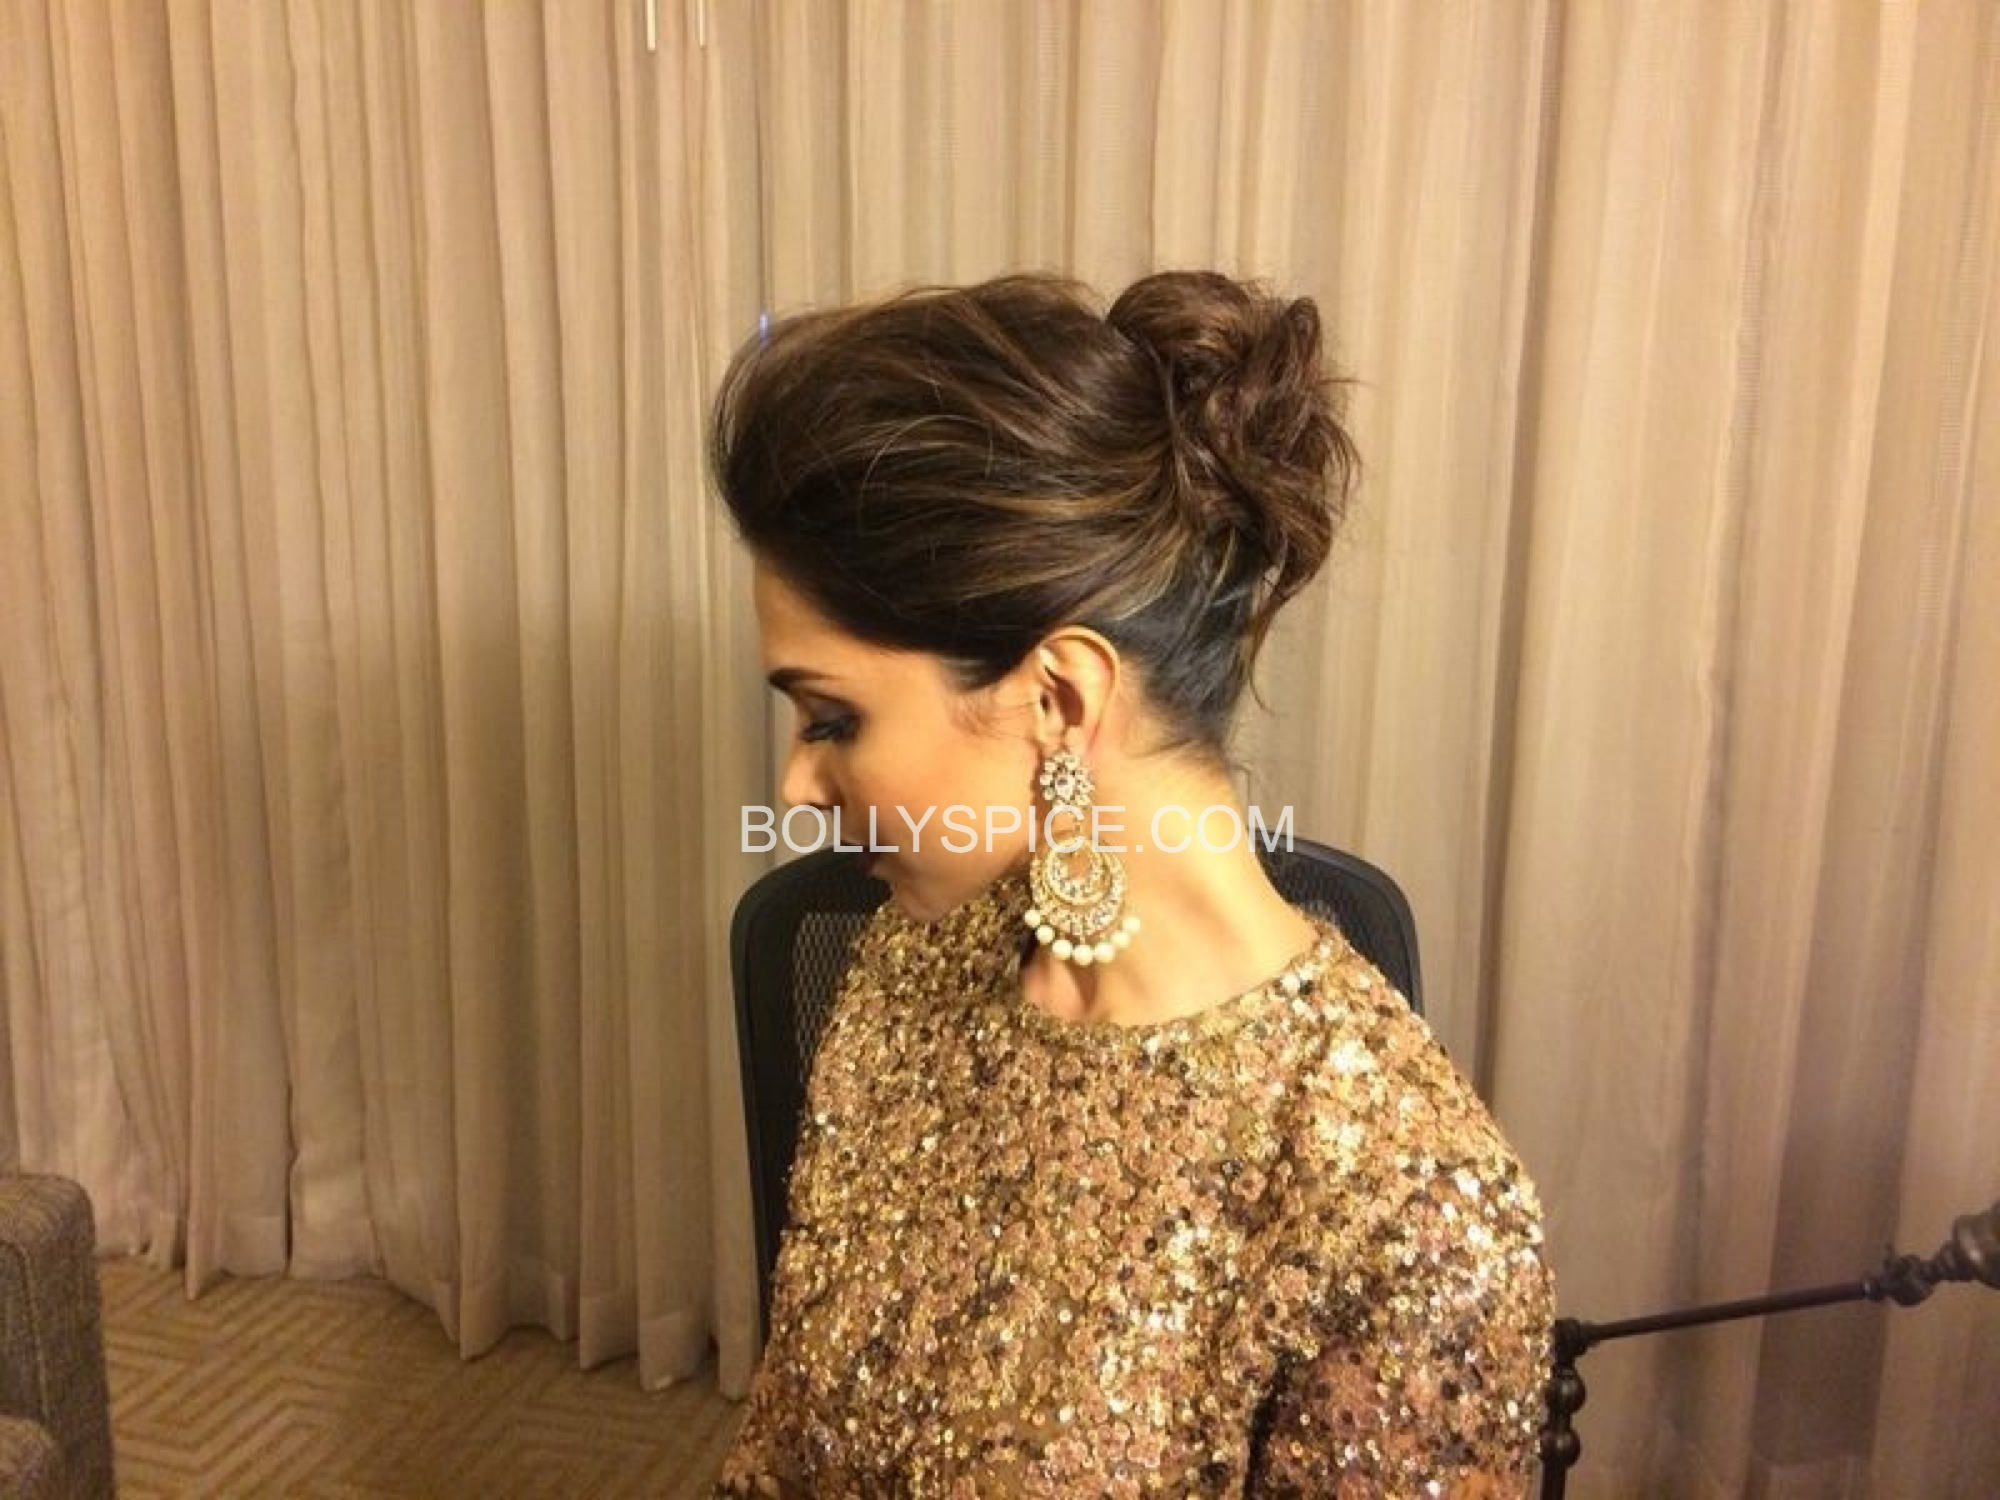 deepikaatiifaexclusive21 Exclusive IIFA Behind the Scenes Pictures of Deepika Padukones Hair and Makeup by Daniel Bauer